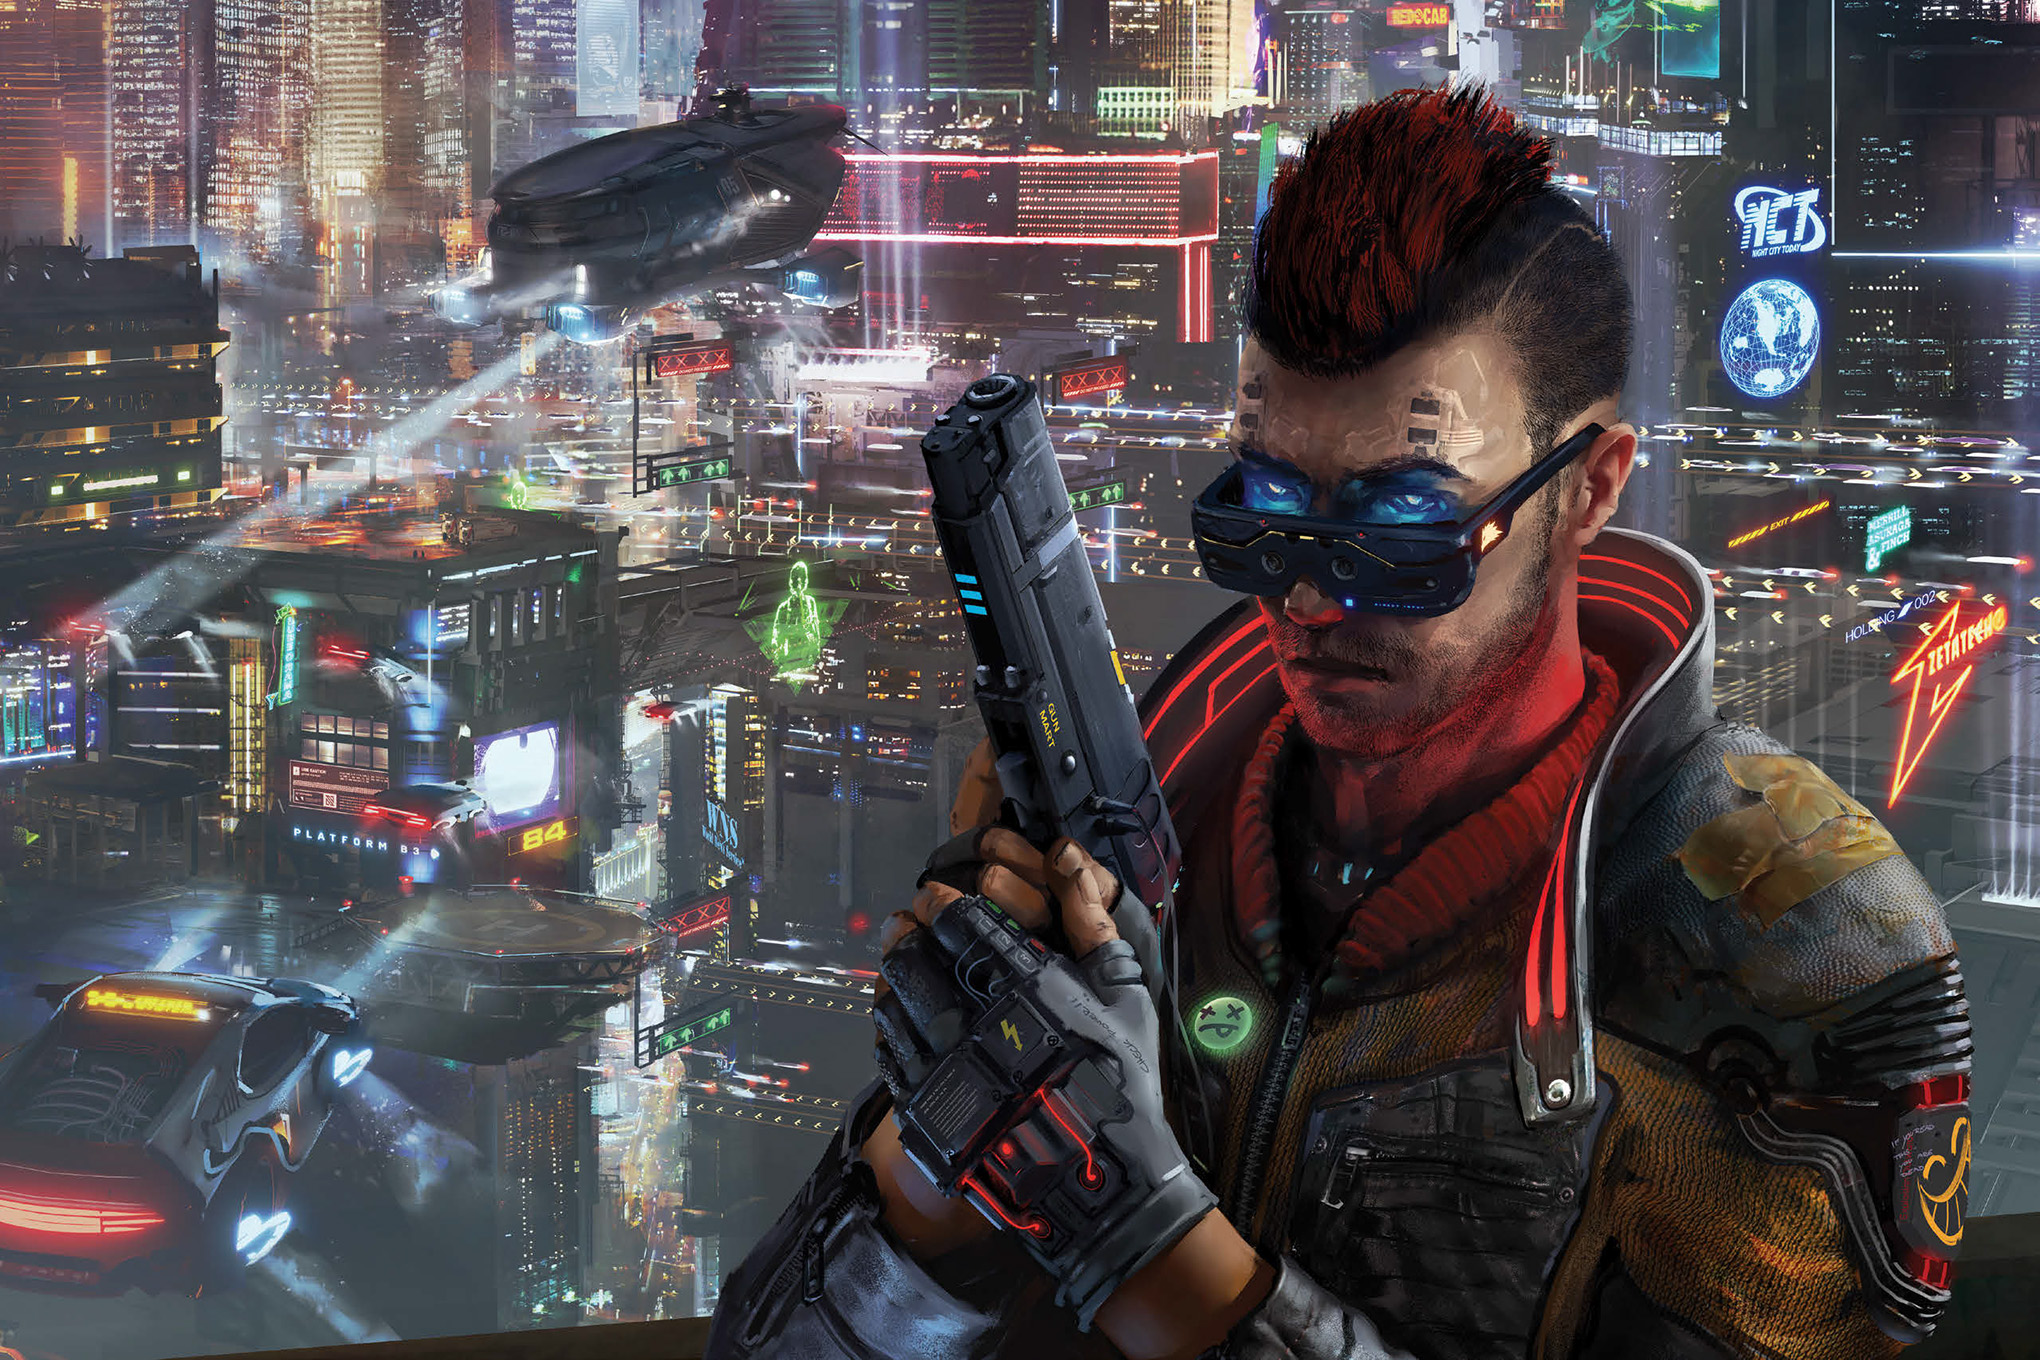 A heavily modified Edgerunner, his eyes glowing with blue LEDs, readies his gun. In the background a heavily armed AV-4 — an airborne gunship from the world of Cyberpunk Red — patrols the streets of Night City.